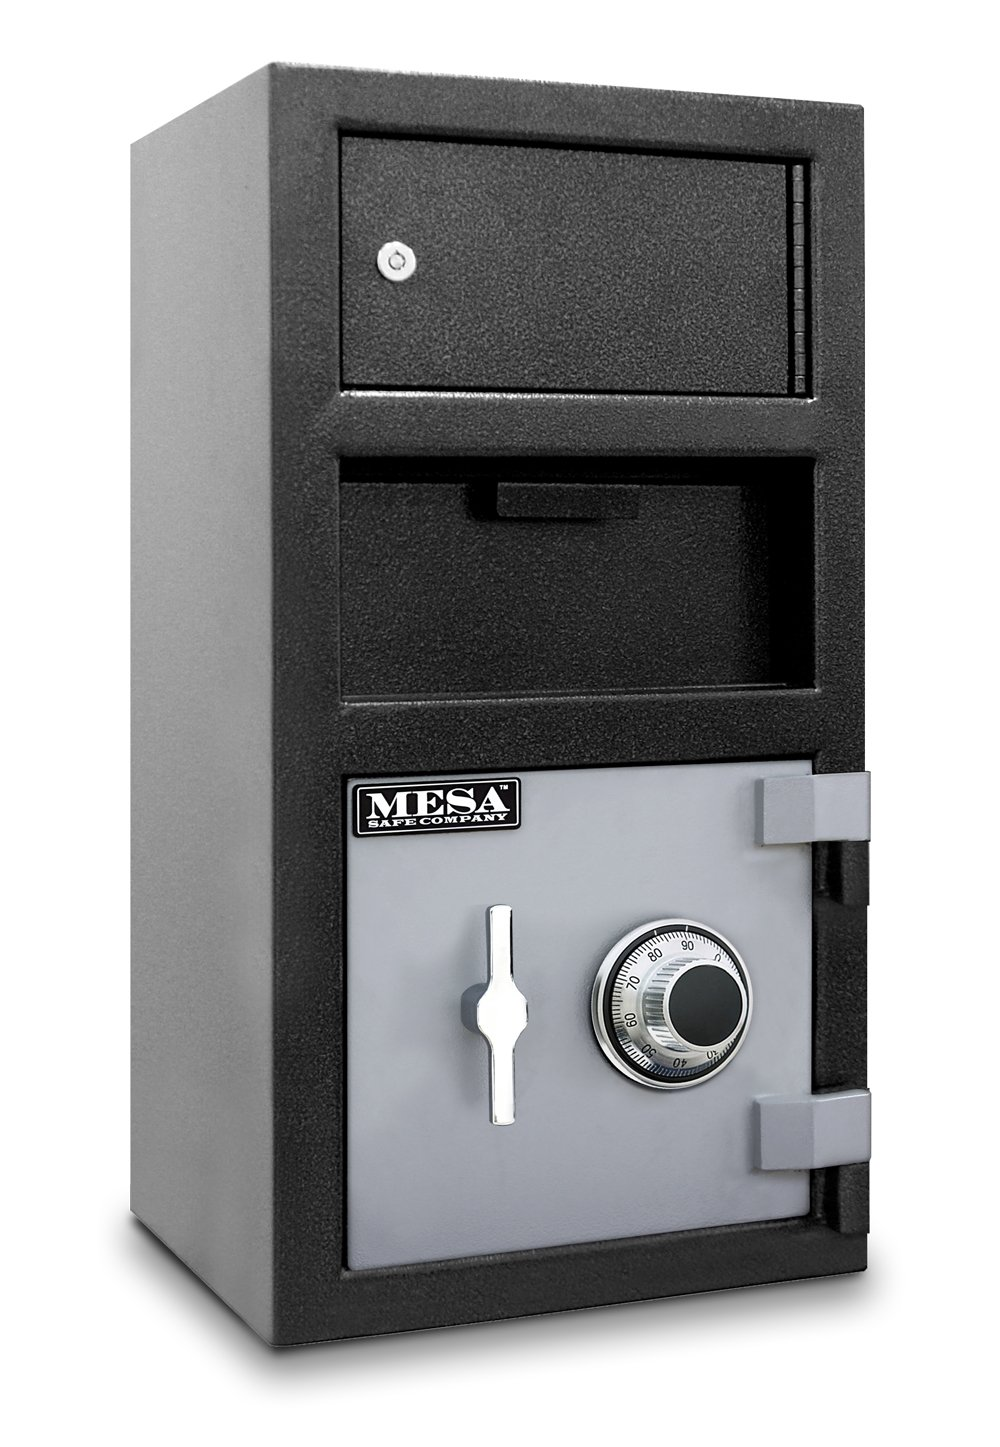 Mesa Safe MFL2014C-OLK All Steel Depository Safe with Outer Locker, with Combination Lock, 1.5-Cubic Feet, Black/Grey